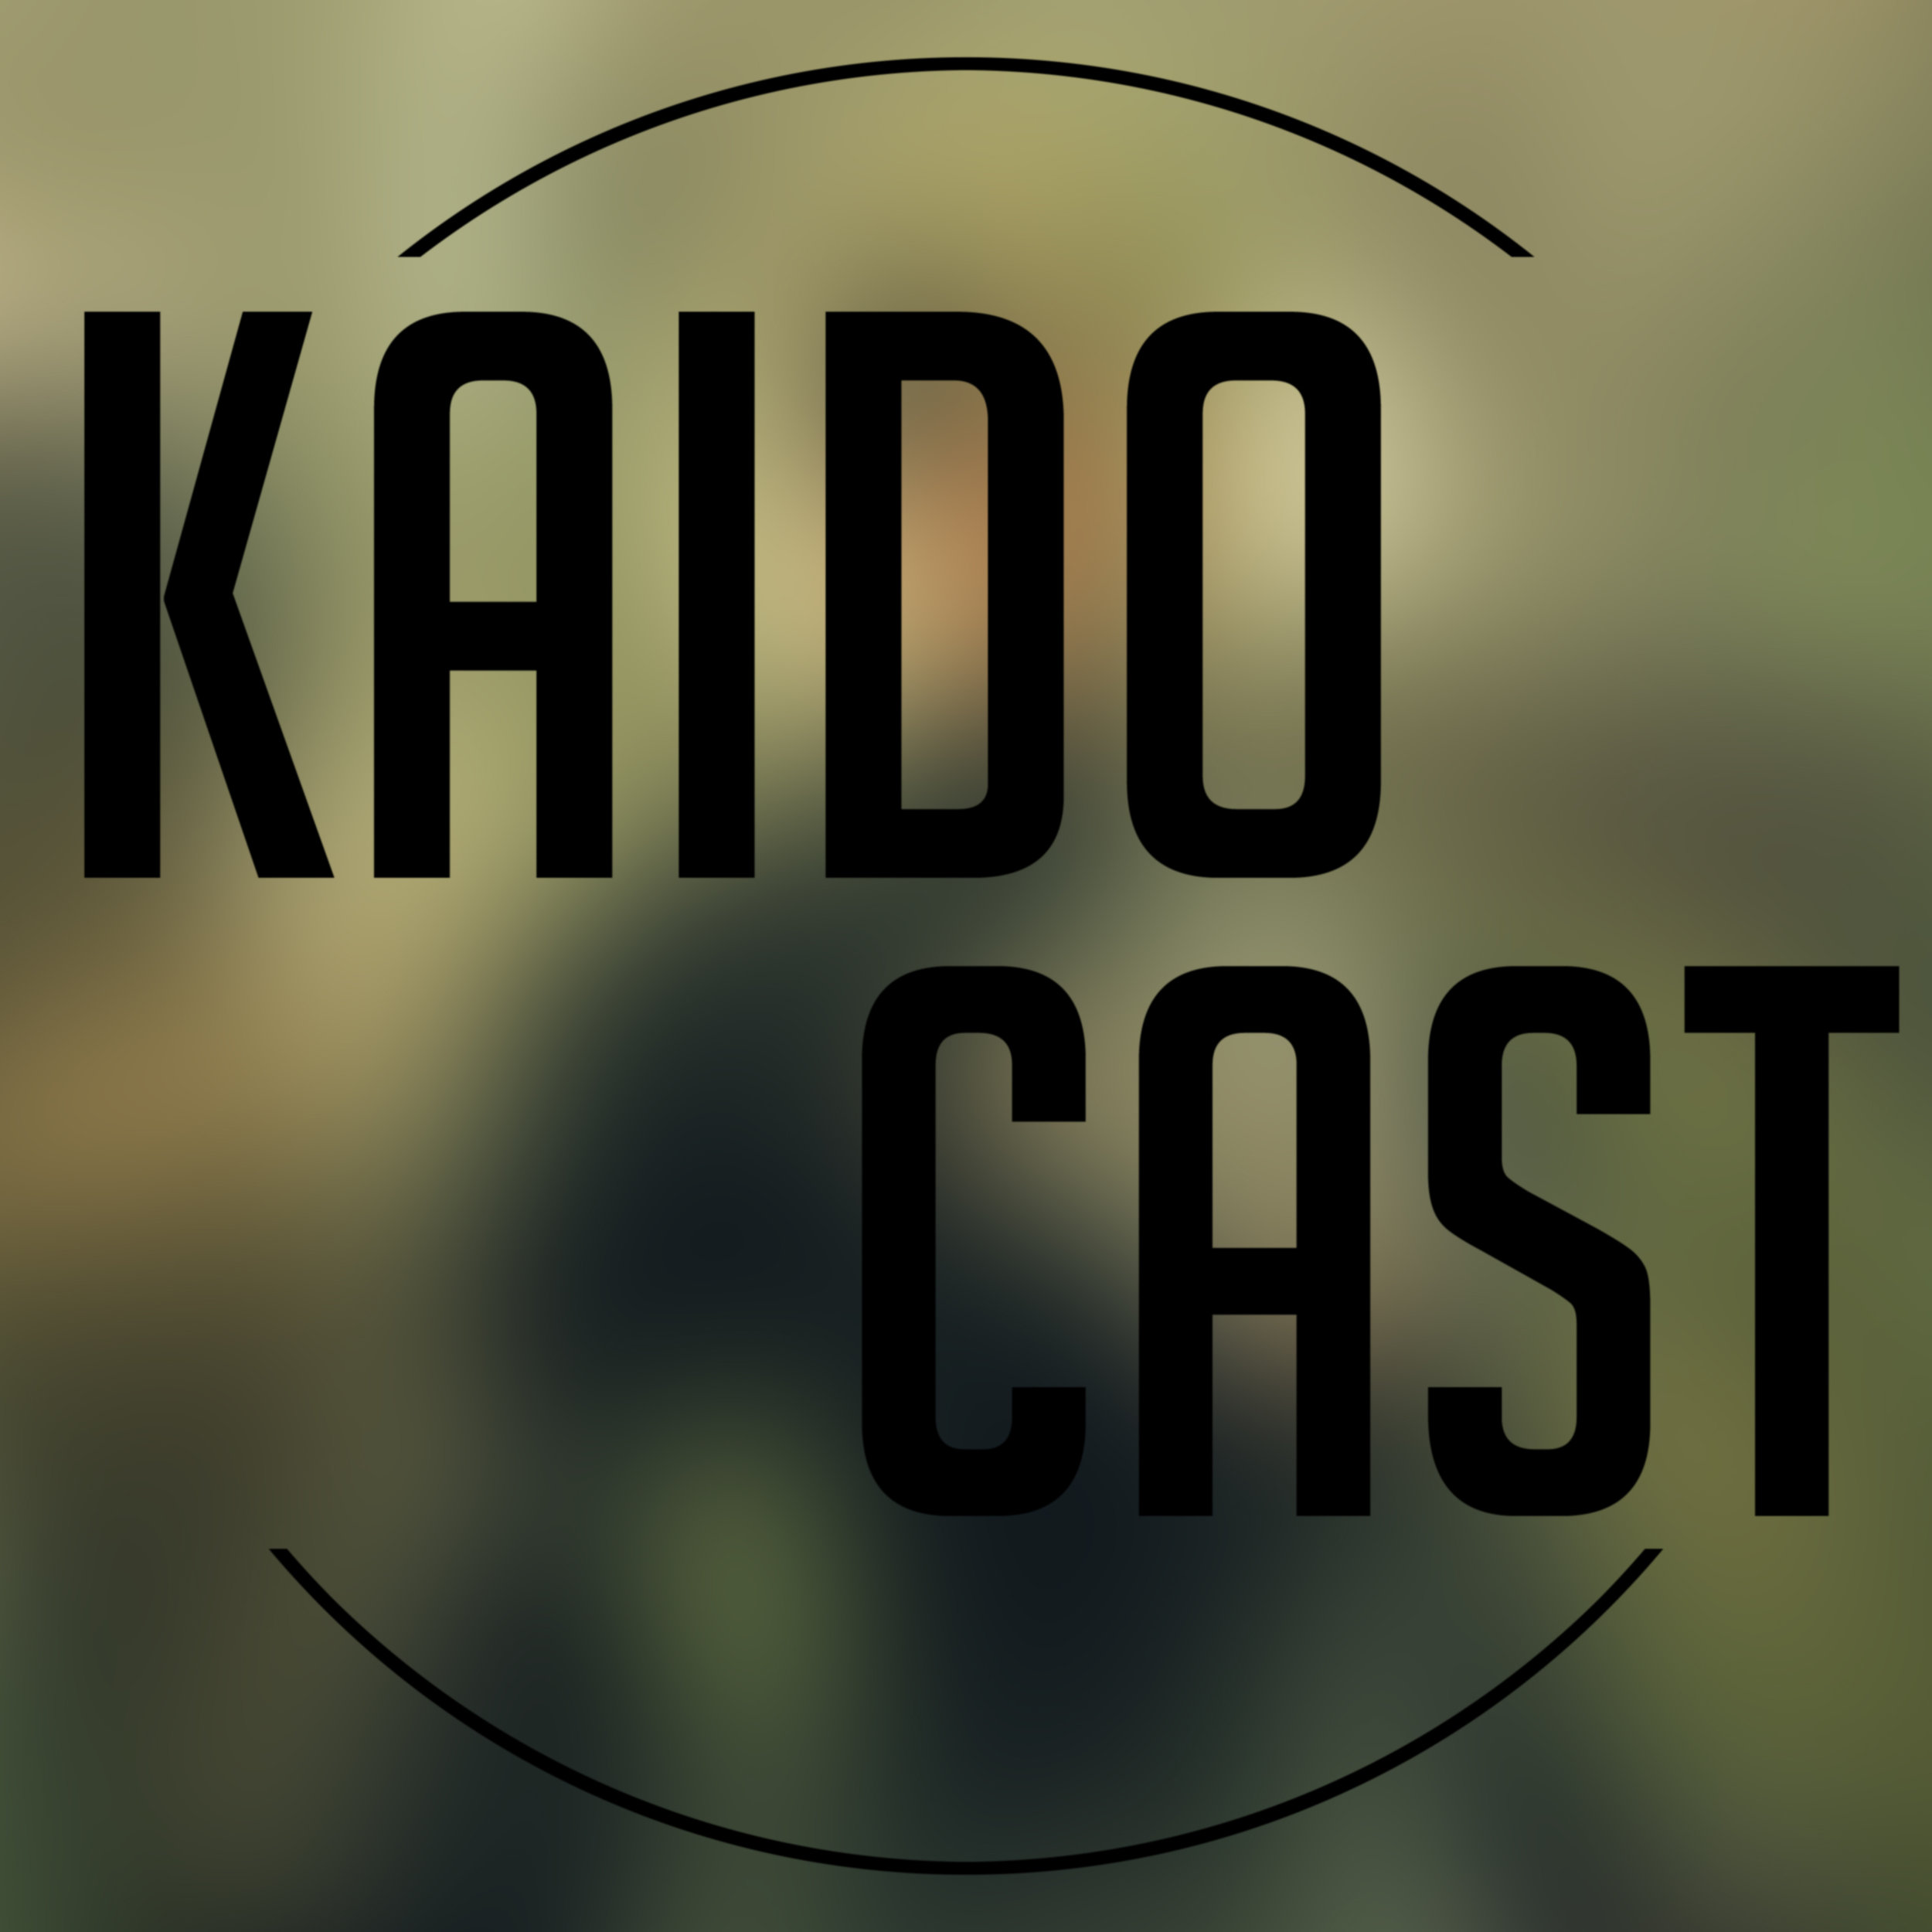 KAIDO Cast 05 - Filothophical - This week we tackle the most controversial topic of the century: Canvassing. Other than that we are Luke-less and unleashed. Dave spoilers Nier, and Zac comes with knowledge of What Remains of Edith Finch.